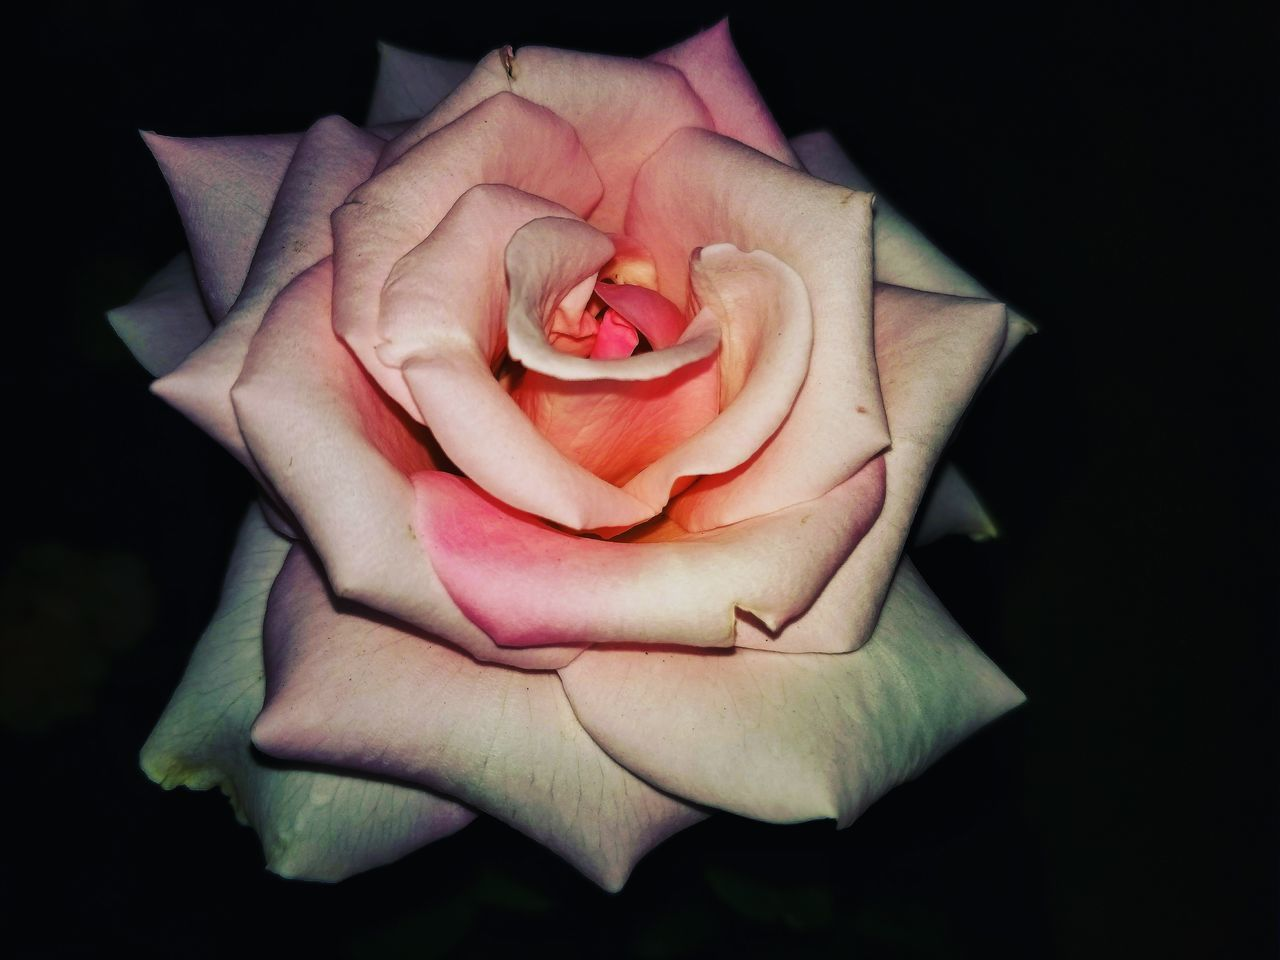 CLOSE-UP OF ROSE IN BLACK BACKGROUND